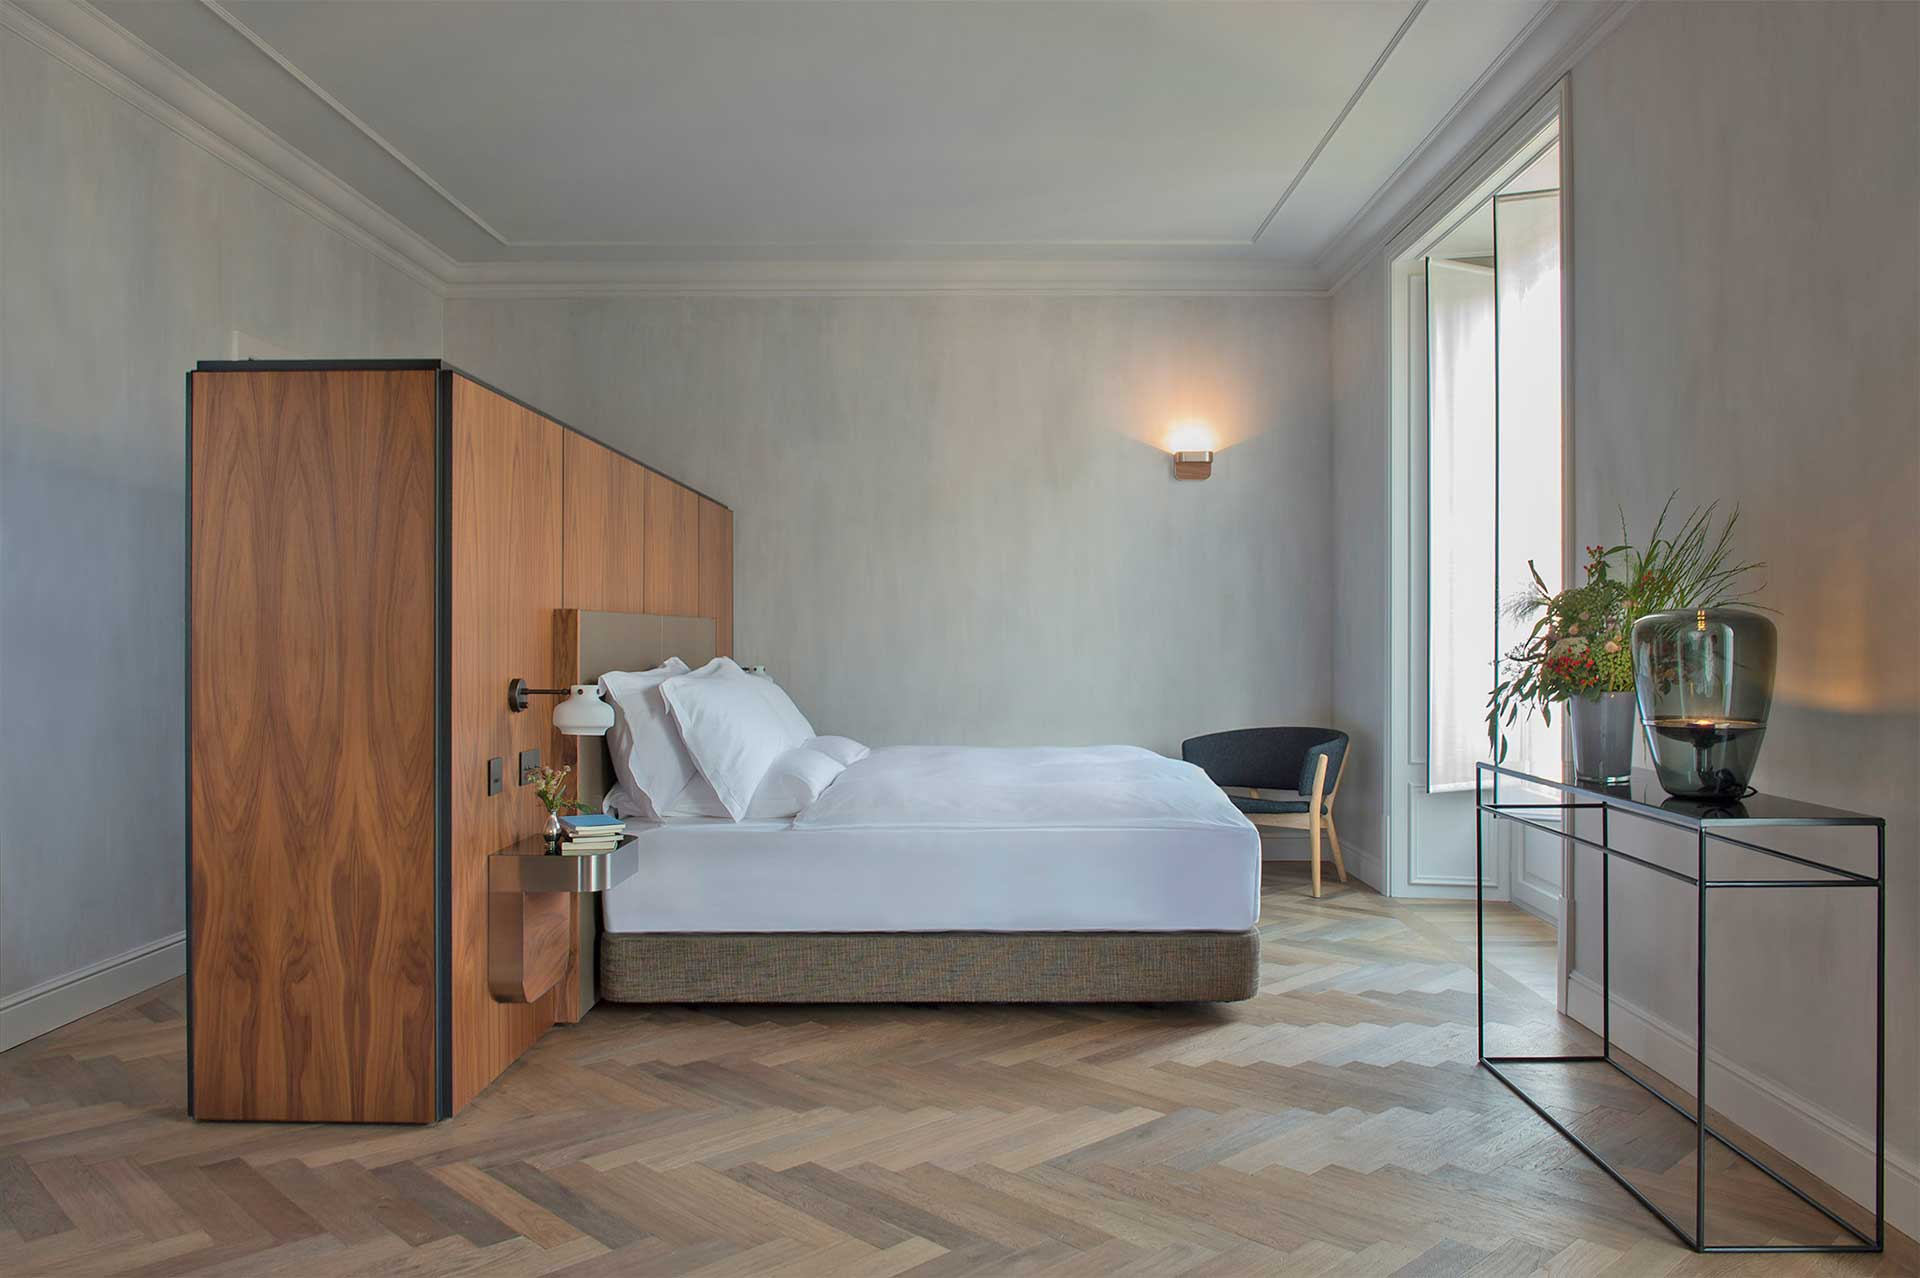 Hotel Alma Barcelona, among the 6 best luxury hotels in Spain to elevate your trip